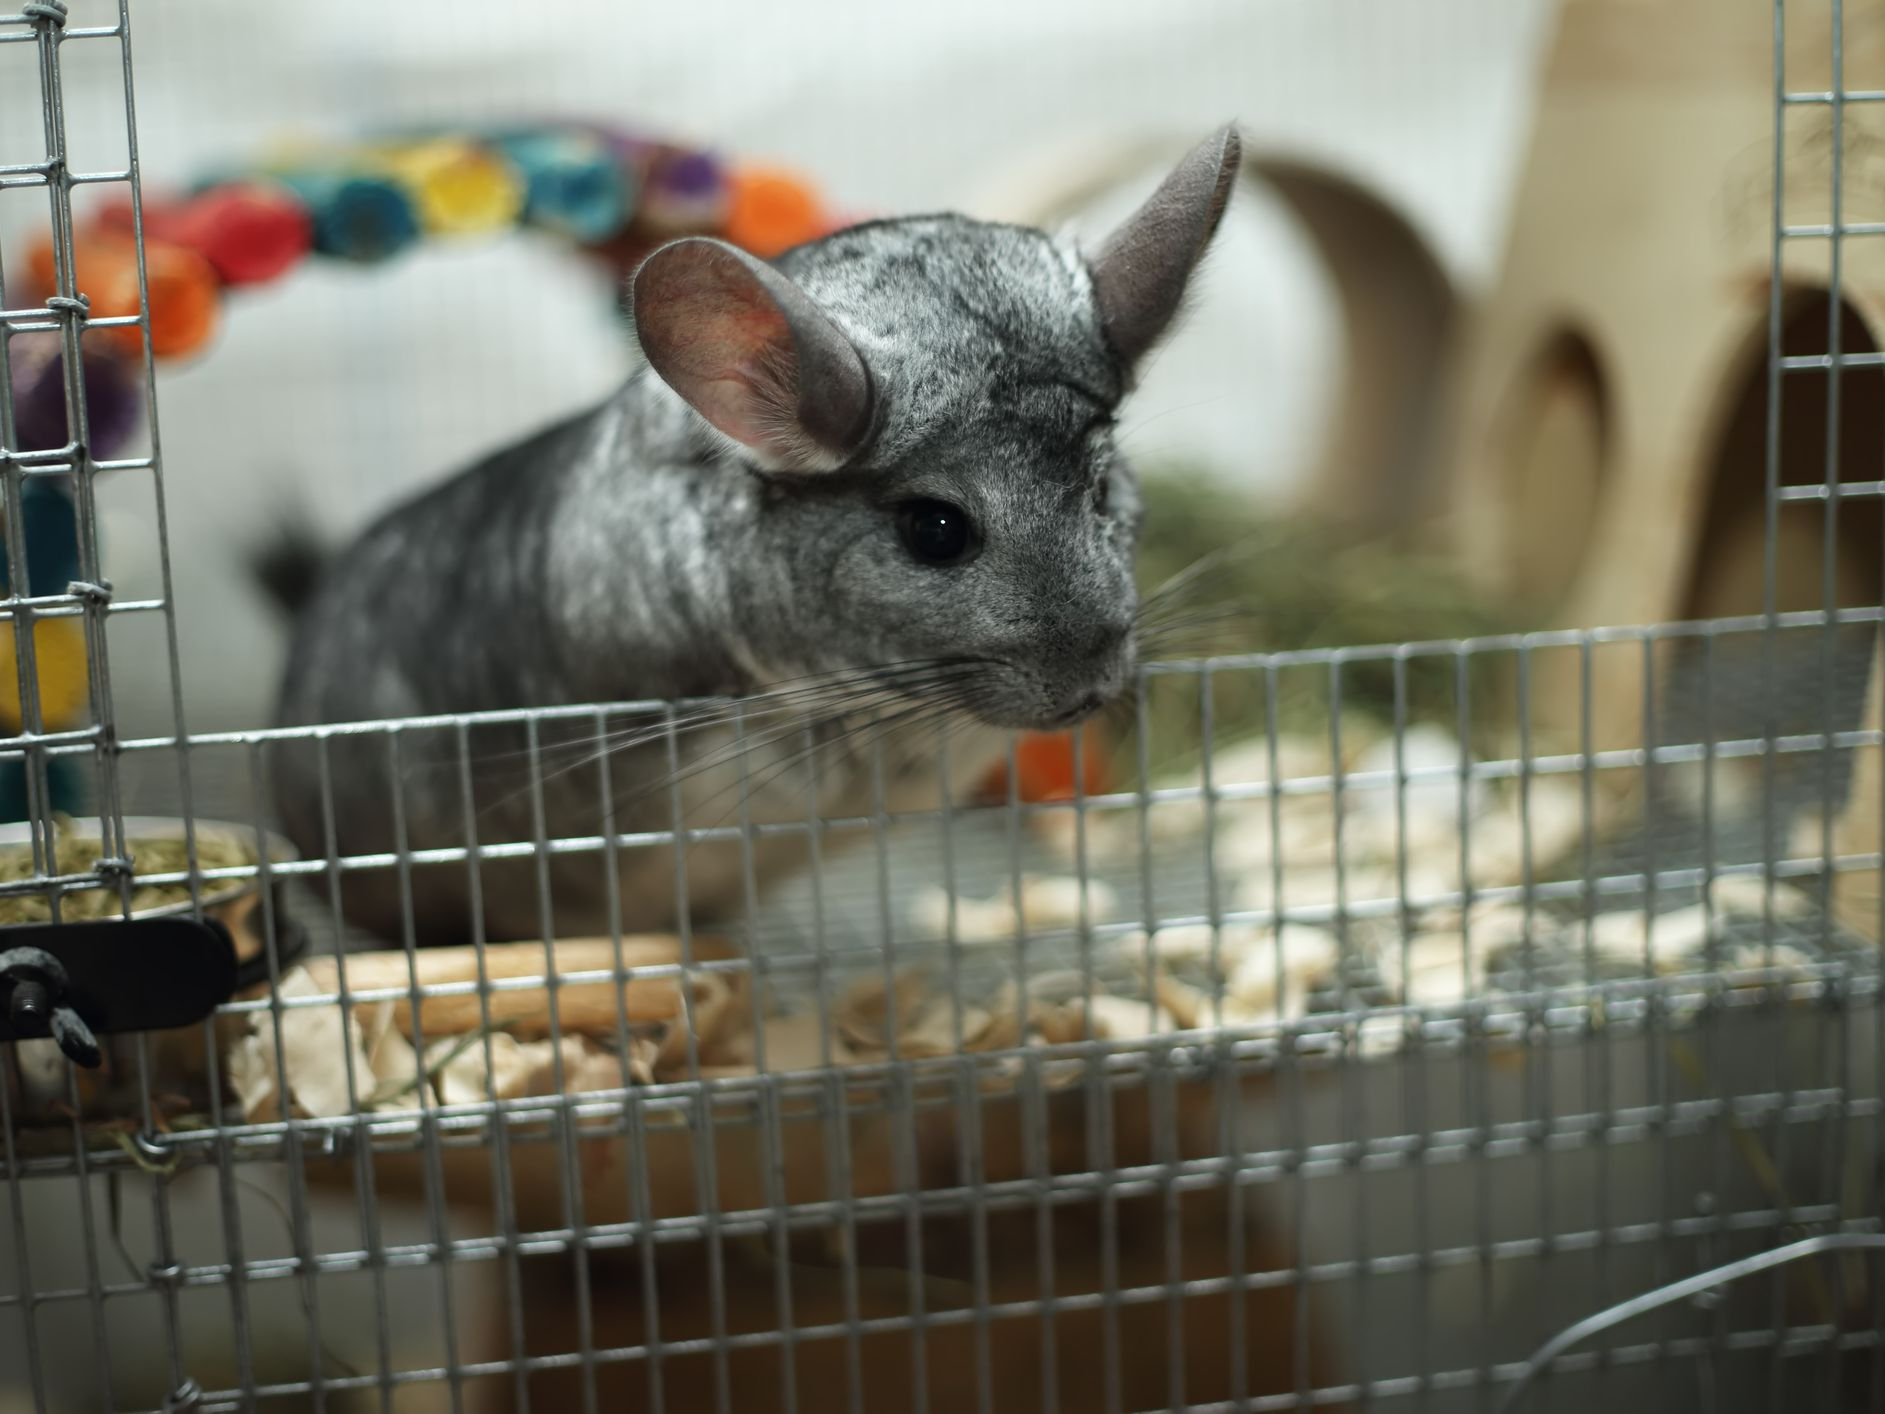 Bedding Options for Pet Chinchillas